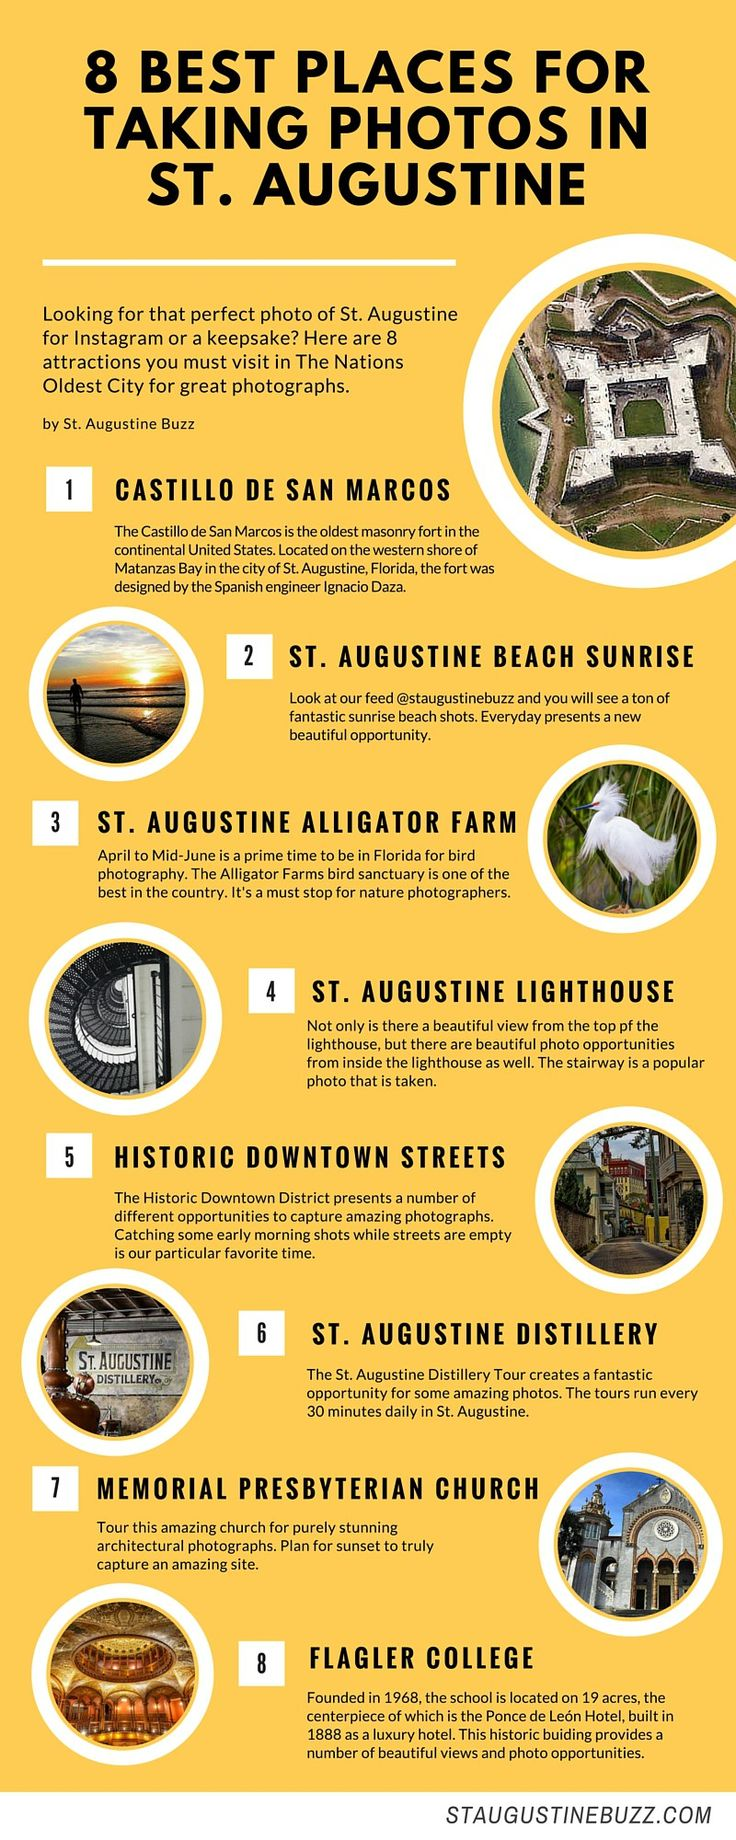 Looking for that perfect photo of St. Augustine for Instagram or a keepsake? This infographic shows the '8 best places for taking photos in St. Augustine'. Add these to your itinerary a…